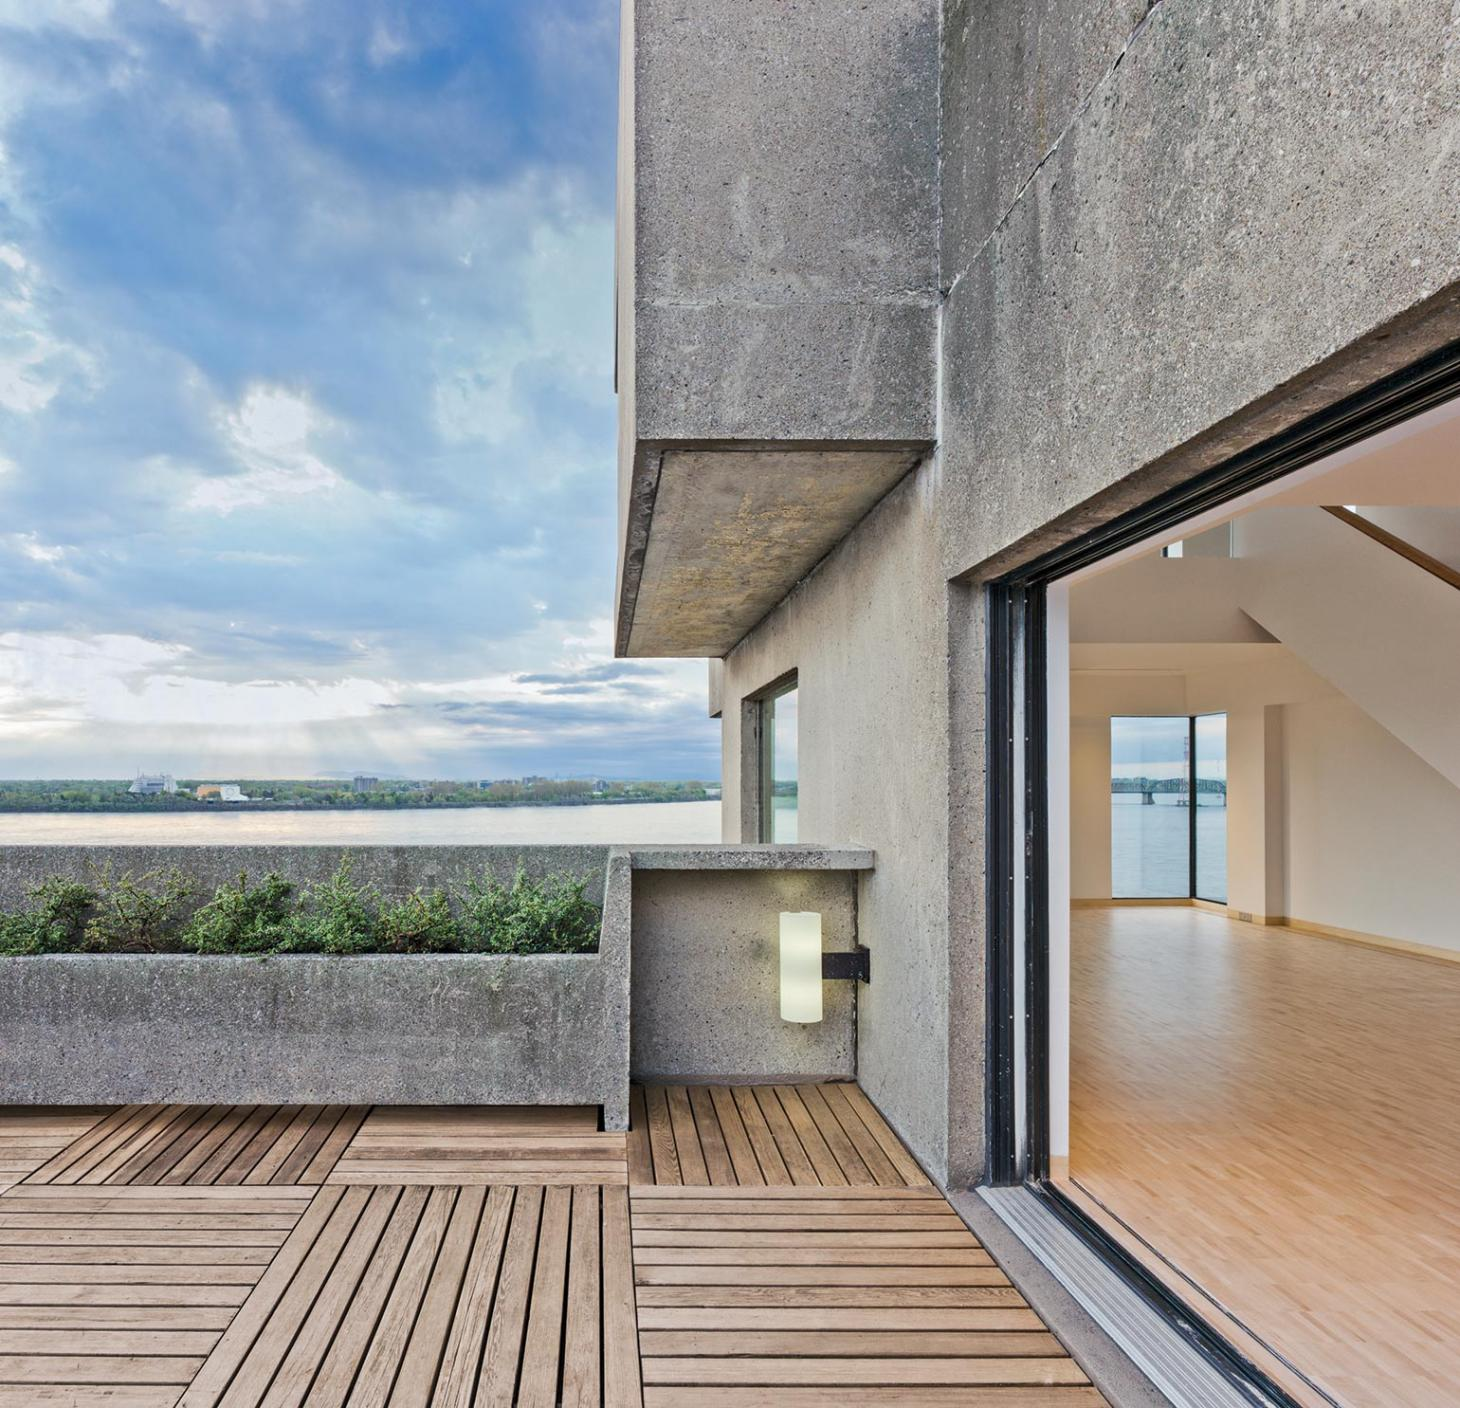 Terrace of Habitat 67